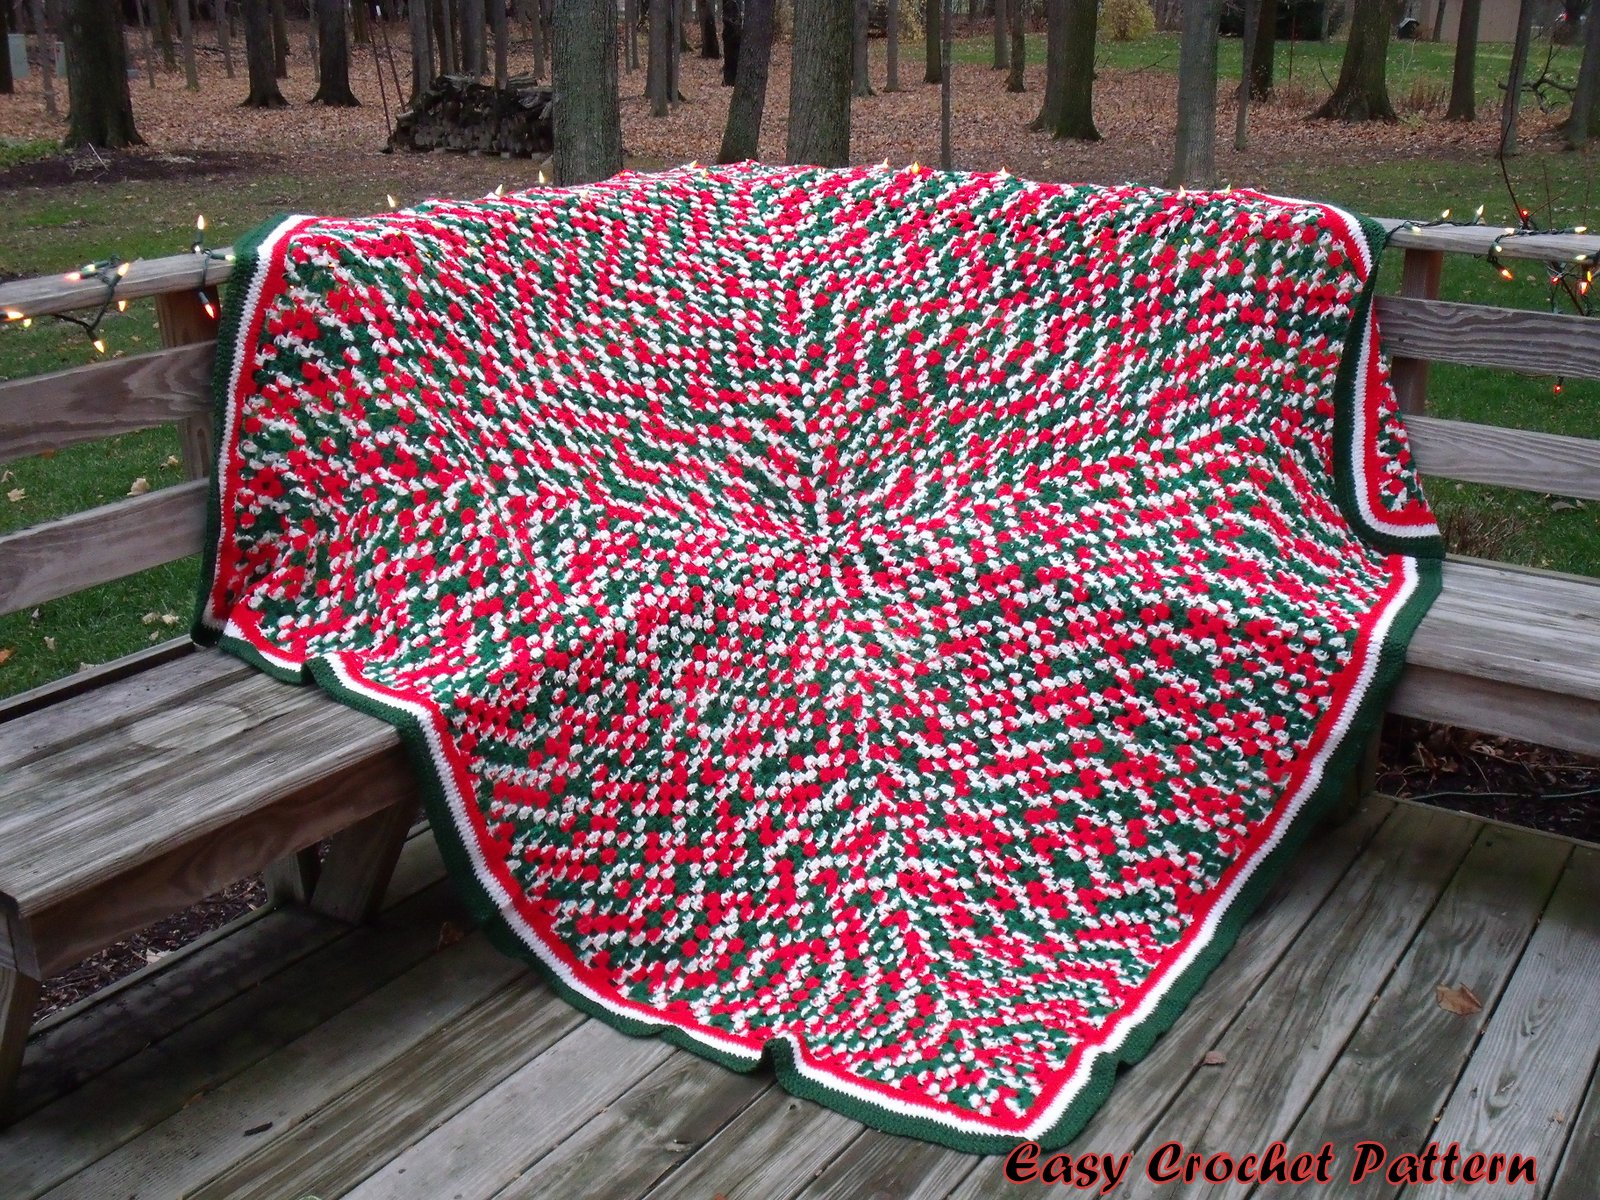 Easy Crochet Pattern: Crocheted Christmas Afghans and Tree Skirt